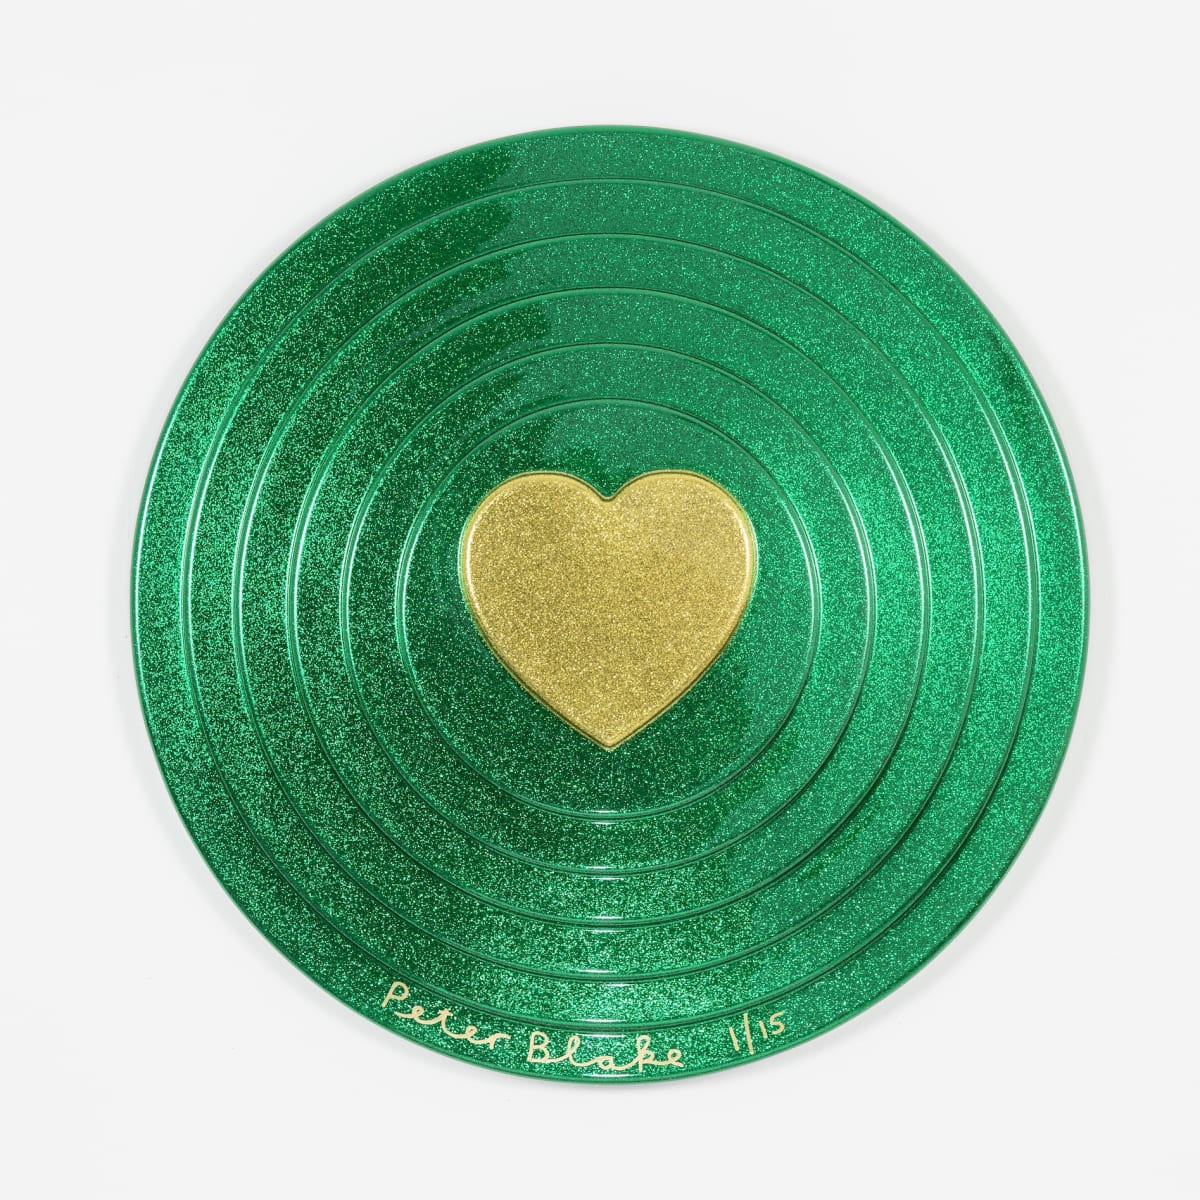 Peter Blake Gold heart on green Target (metal flake) , 2017 Vacuum formed plastic, paint 69 x 69 x 10 cm Edition of 15 Signed and numbered